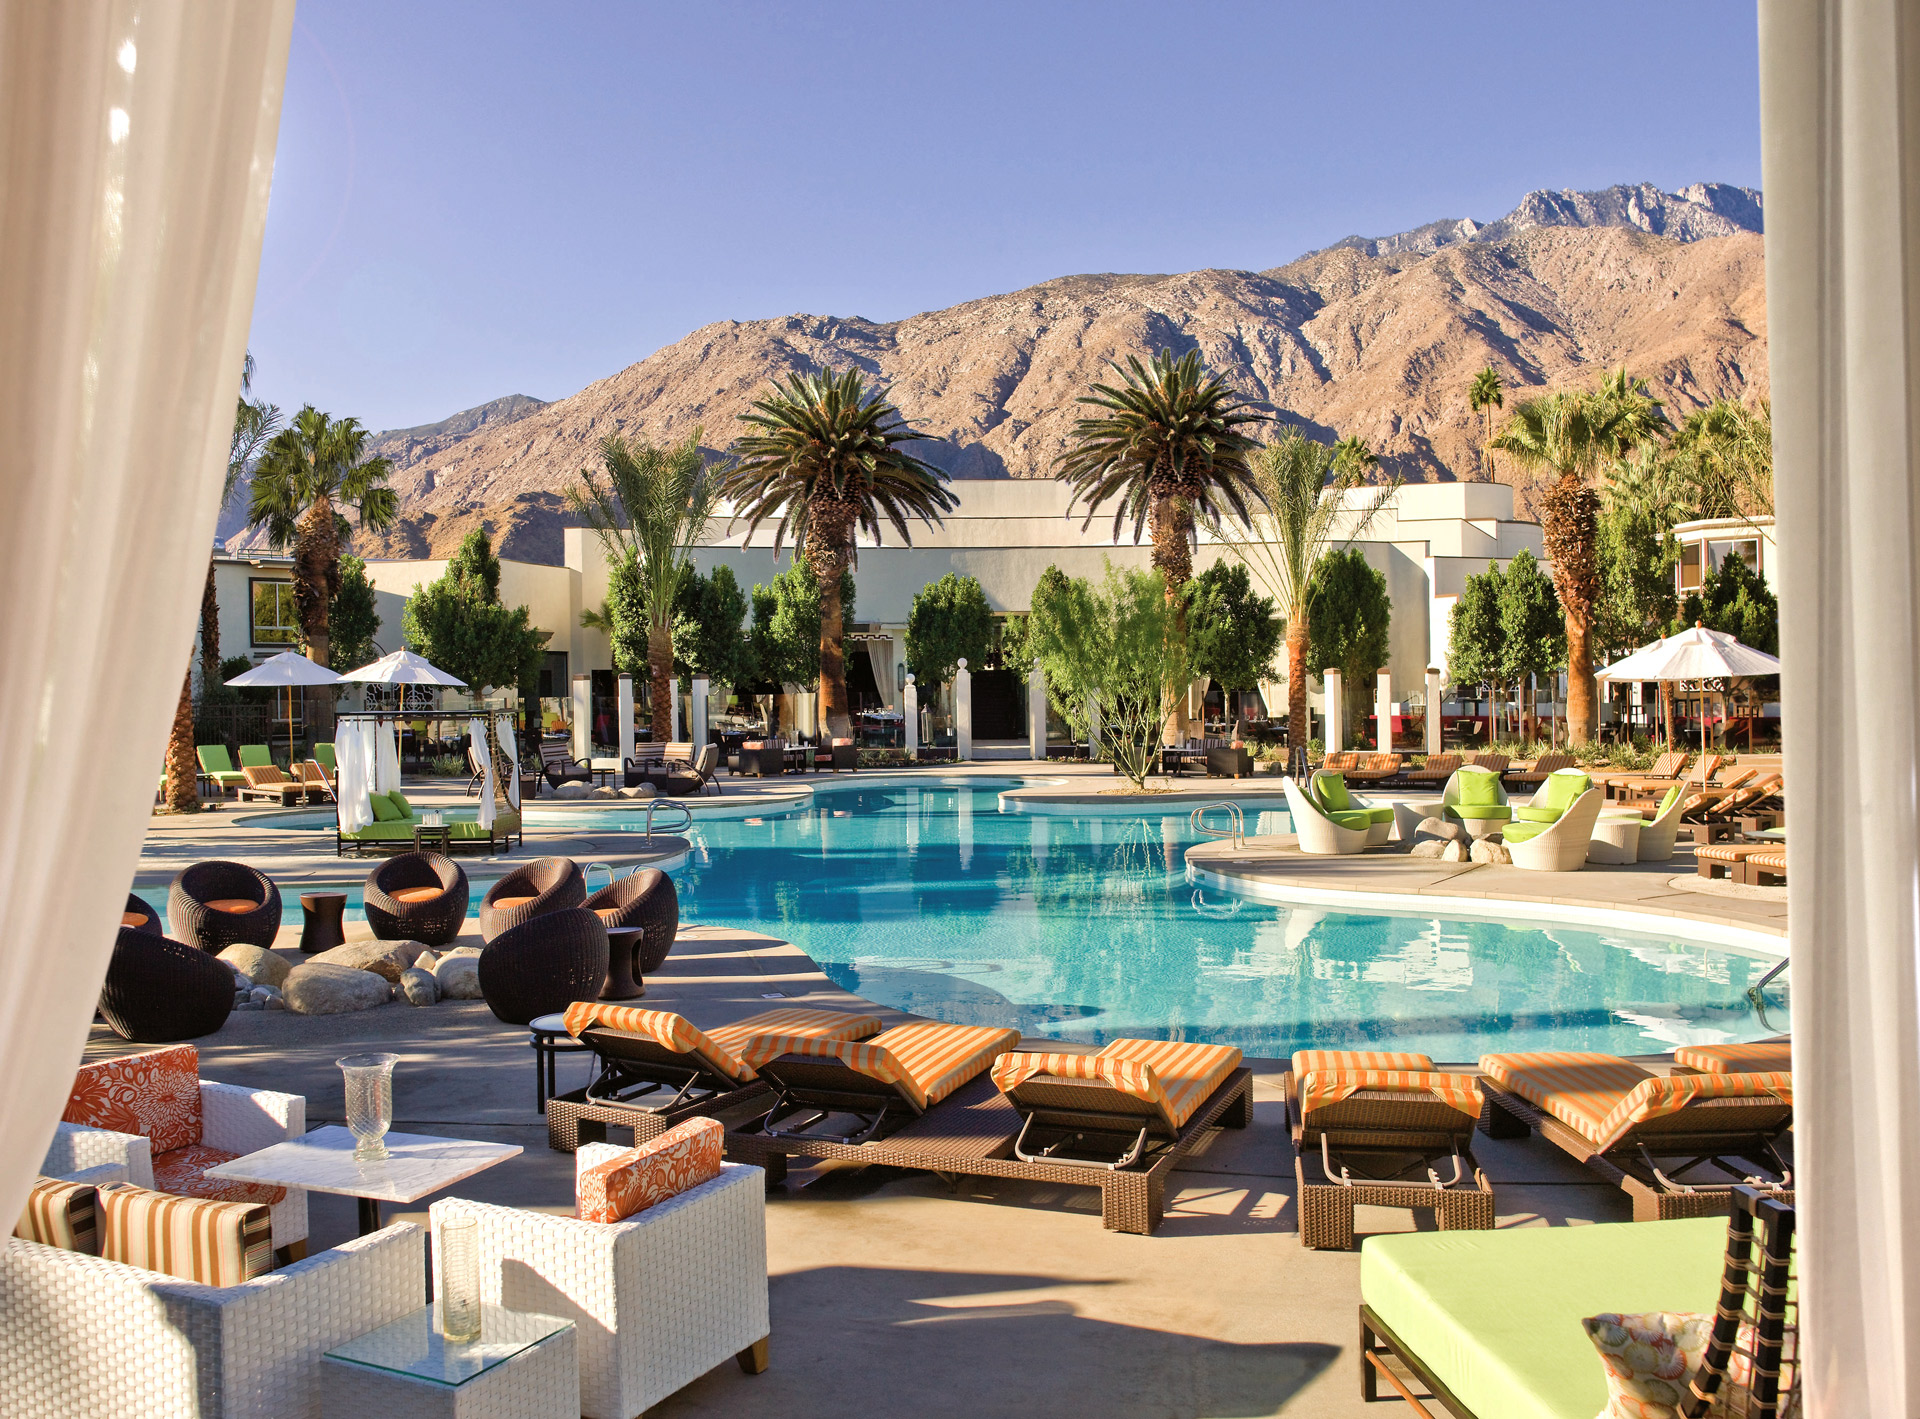 ... daybeds are plush poolside beds for ultra comfort. Cabanas require a minimum $1000 food and beverage spend on weekends while daybeds require minimum ... & Best VIP Pool Cabanas in Greater Palm Springs